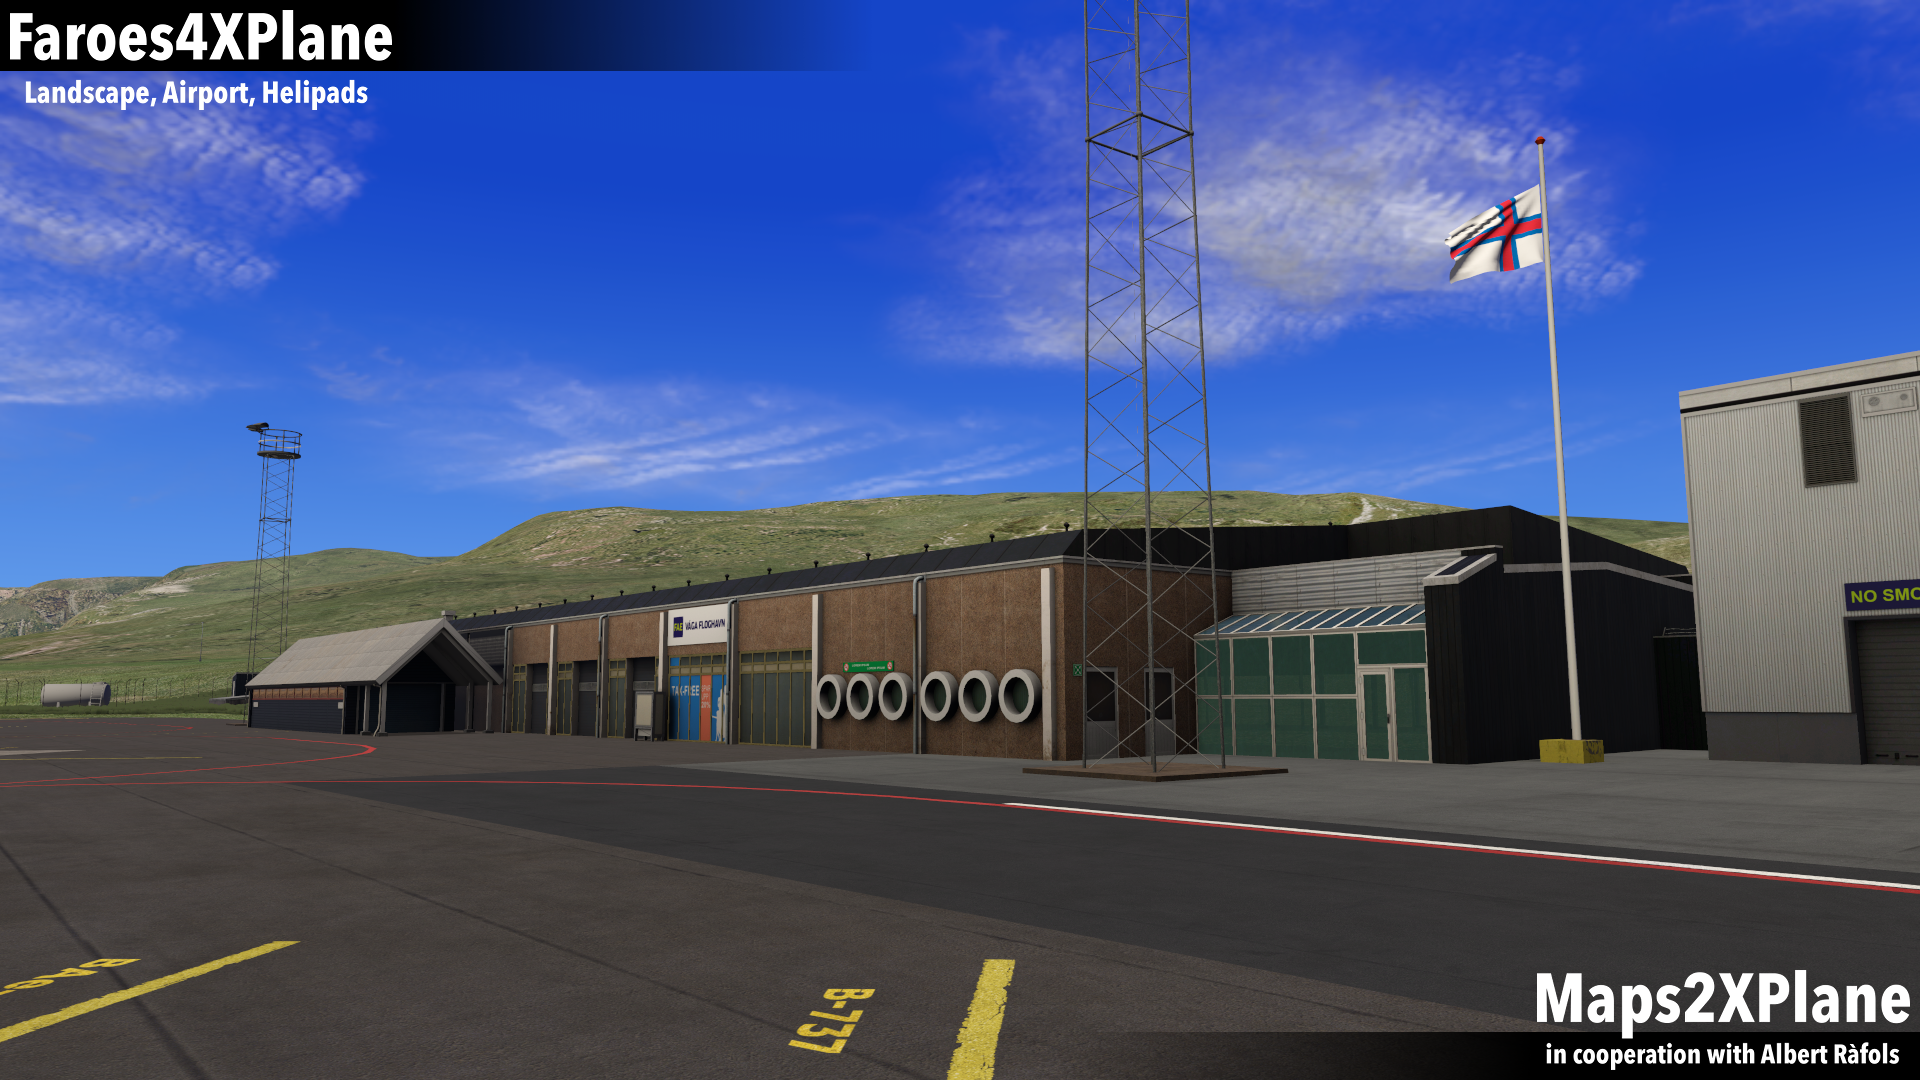 faroes4xplane_progress_04.png